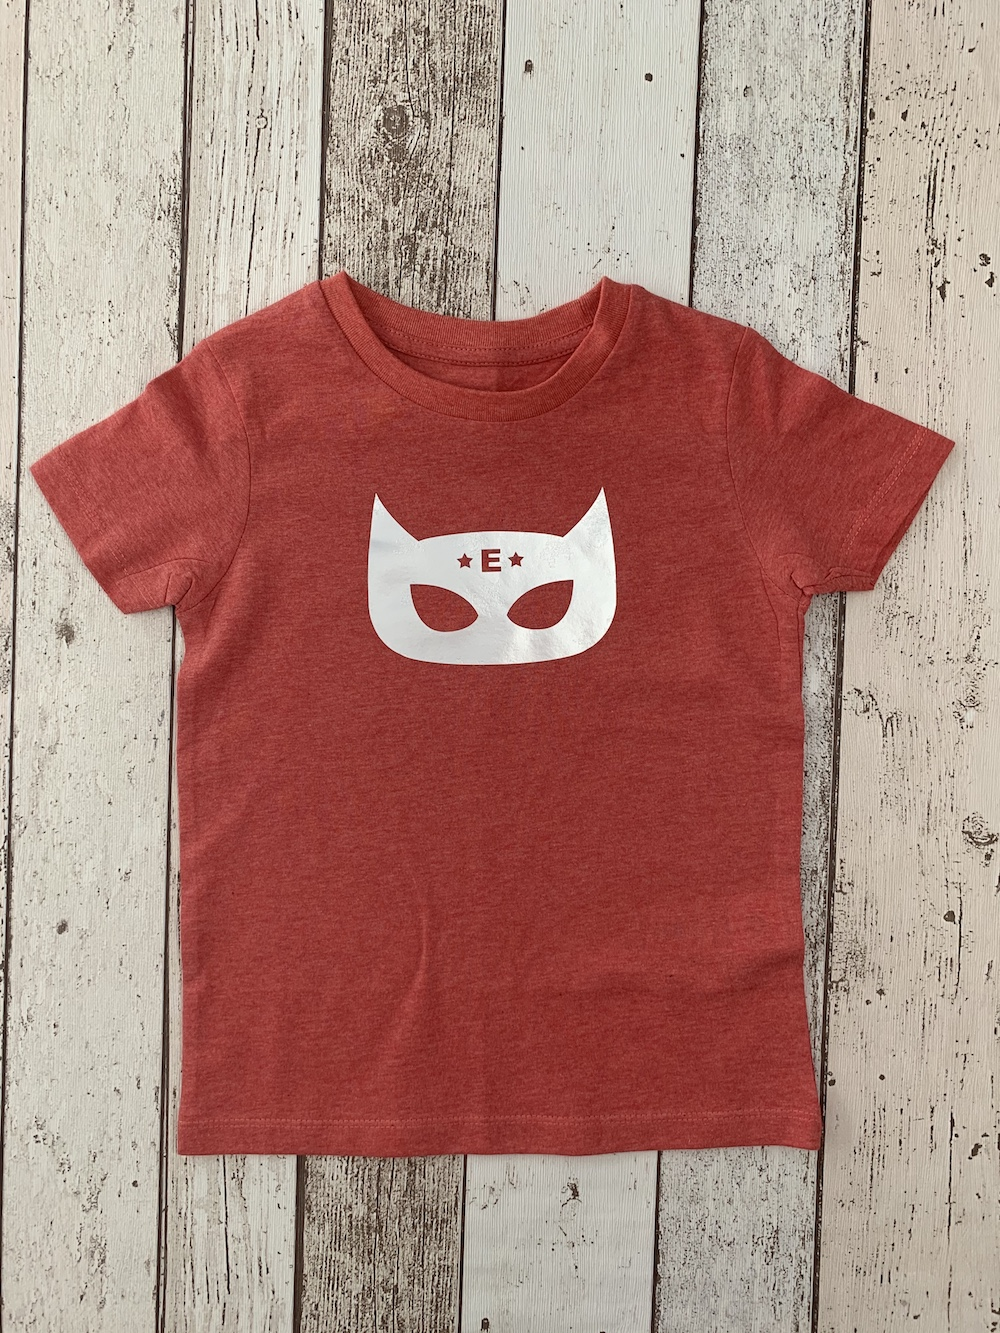 Superhero Personalised Tshirt – Heather Red And Silver